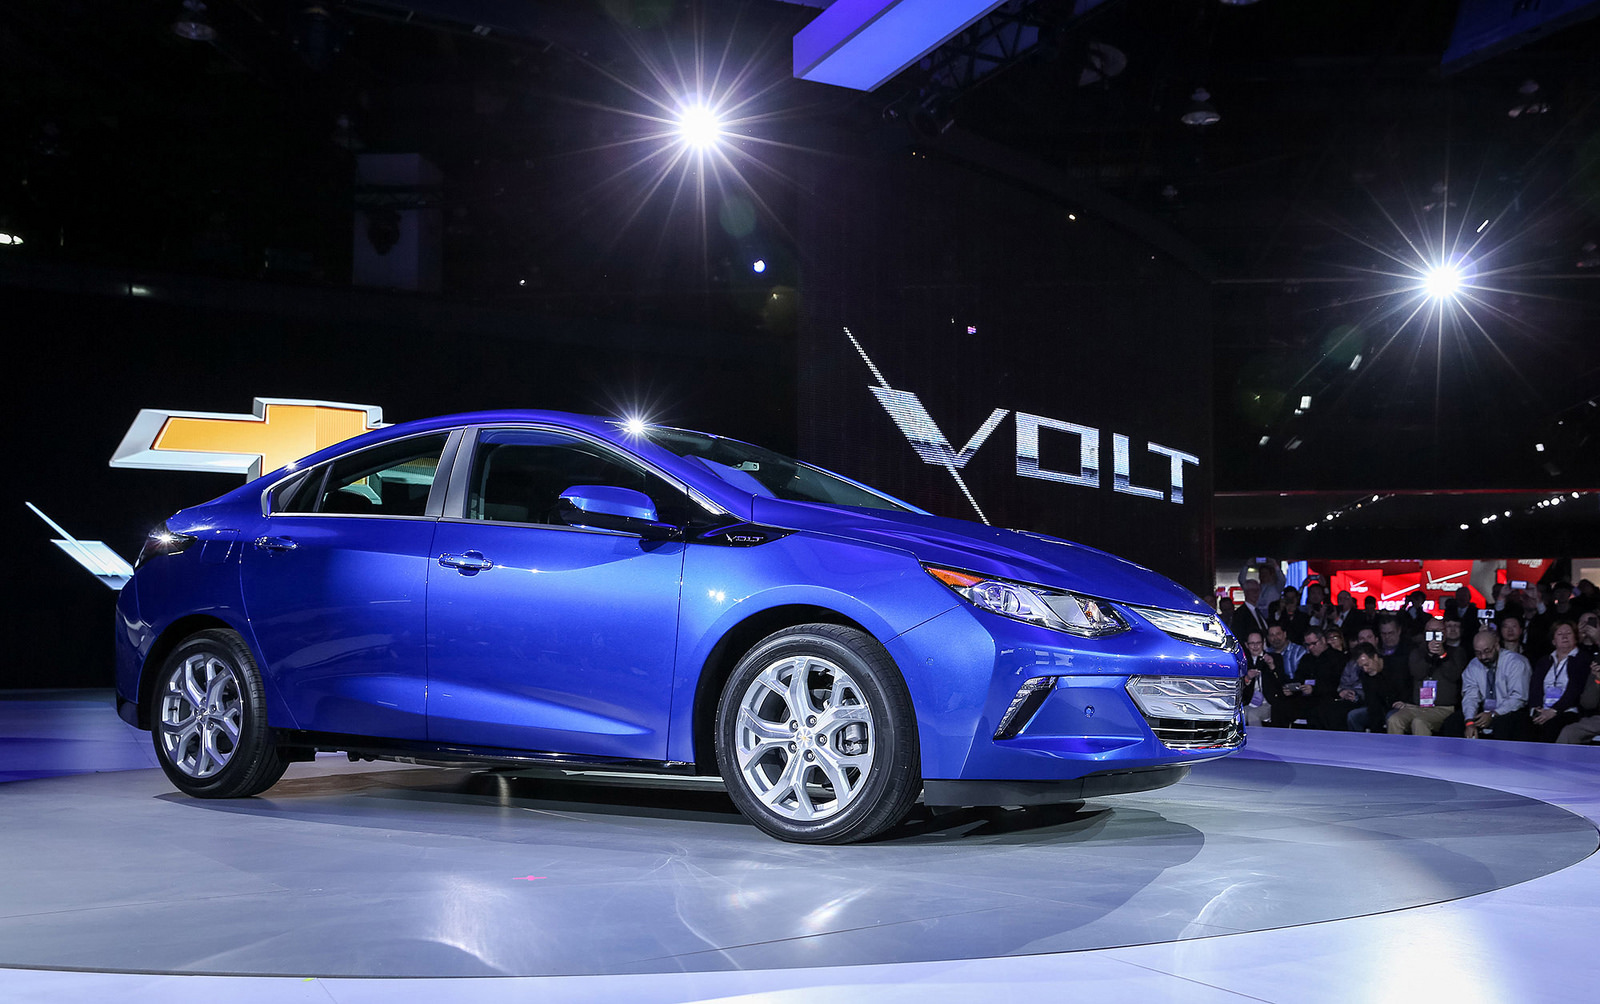 2016 chevrolet volt overview the news wheel. Black Bedroom Furniture Sets. Home Design Ideas